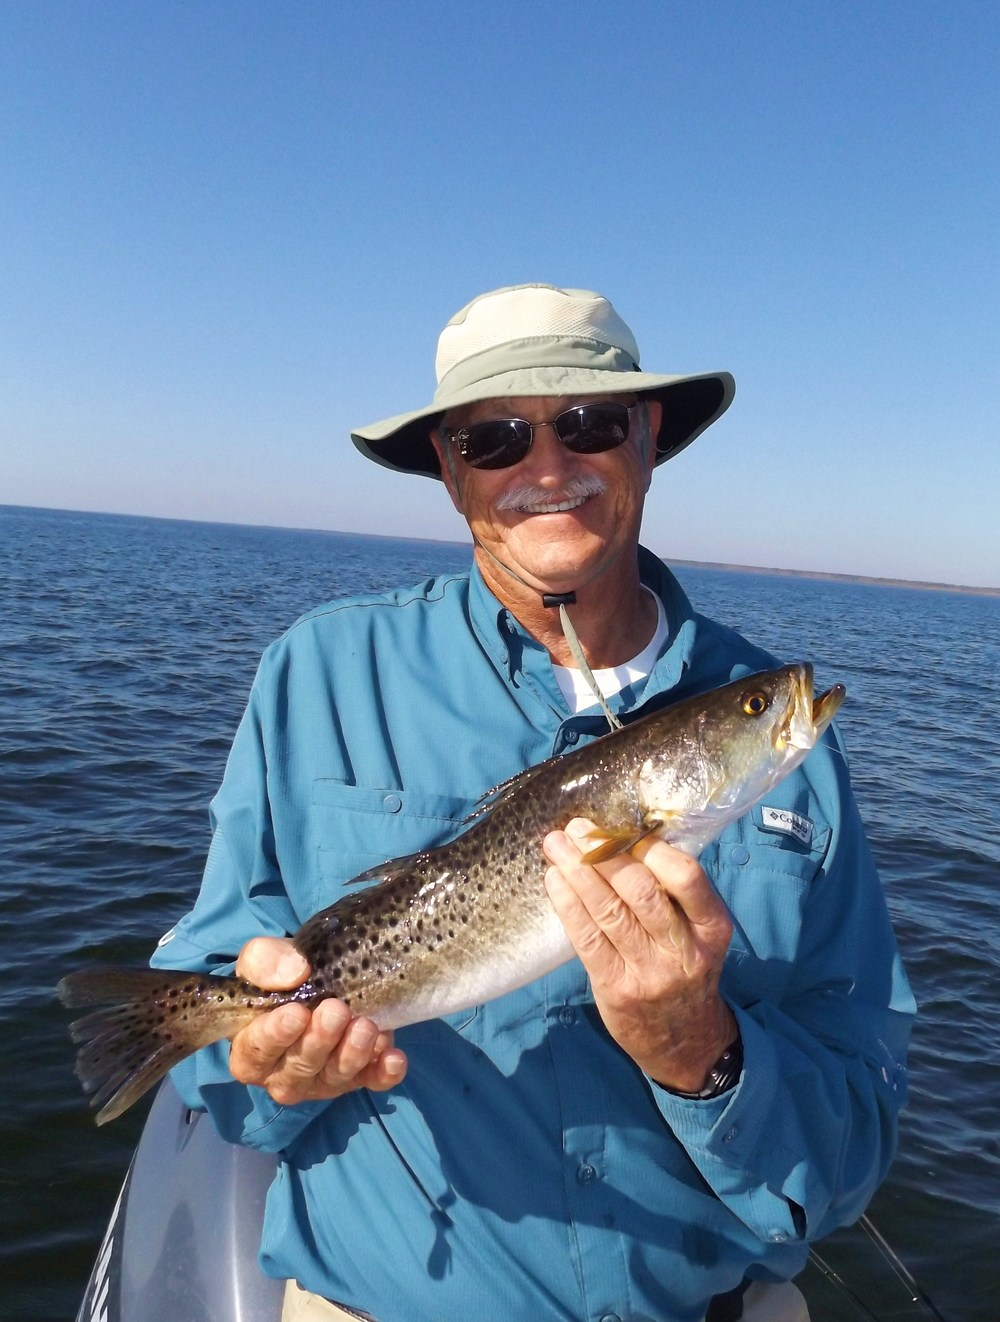 "Wayne walker of Dunnellon, Fl. with a nice 19"" trout caught Tuesday, December 8th"